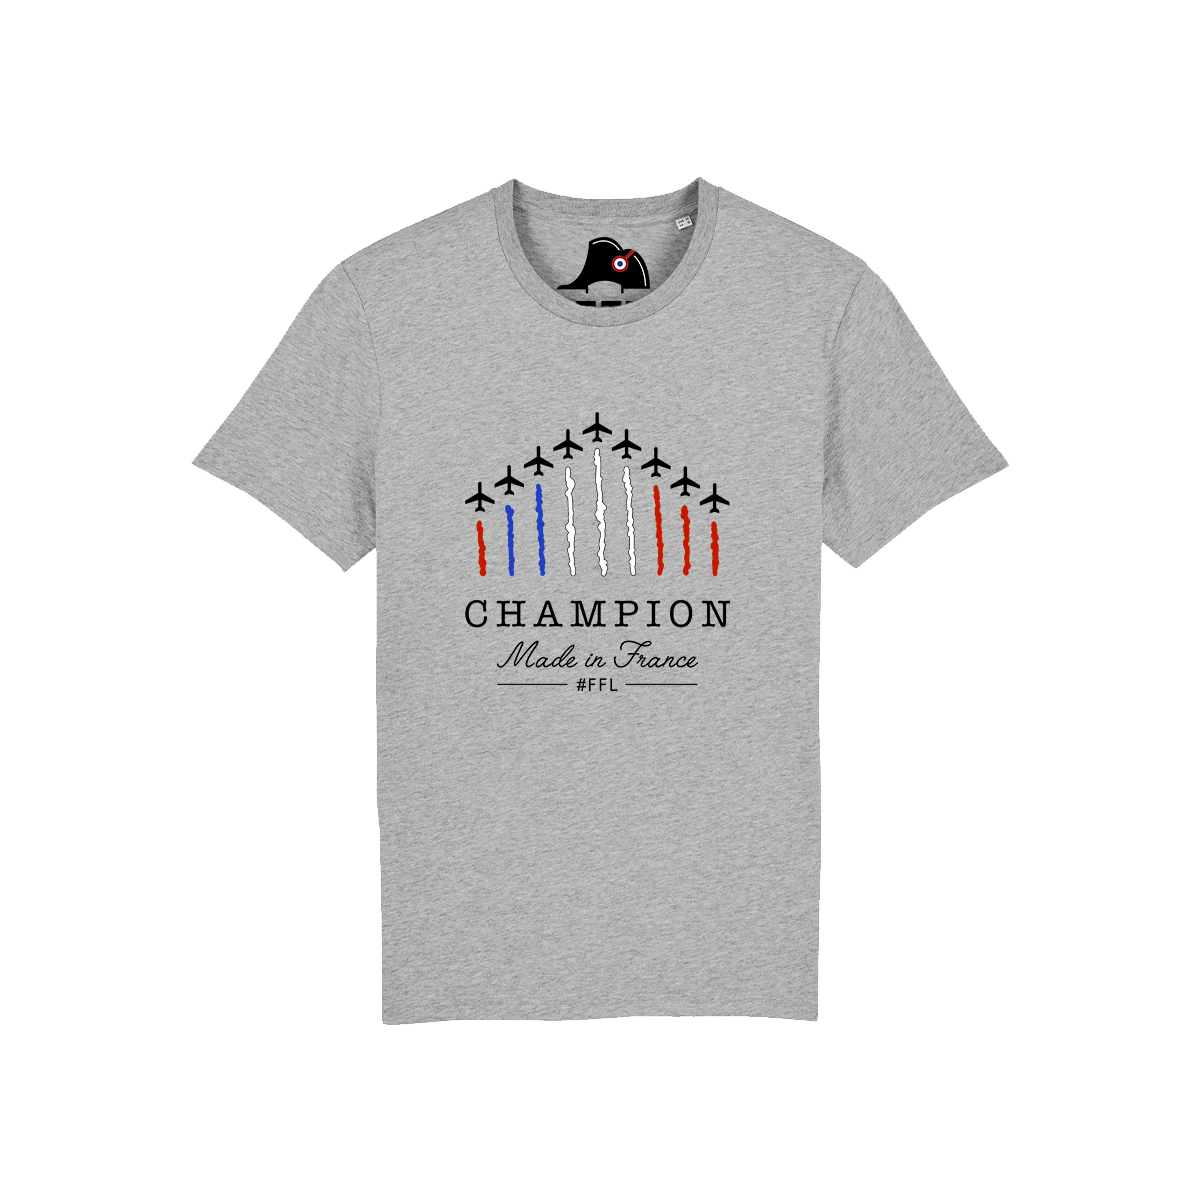 t-shirt champion made in France FFL